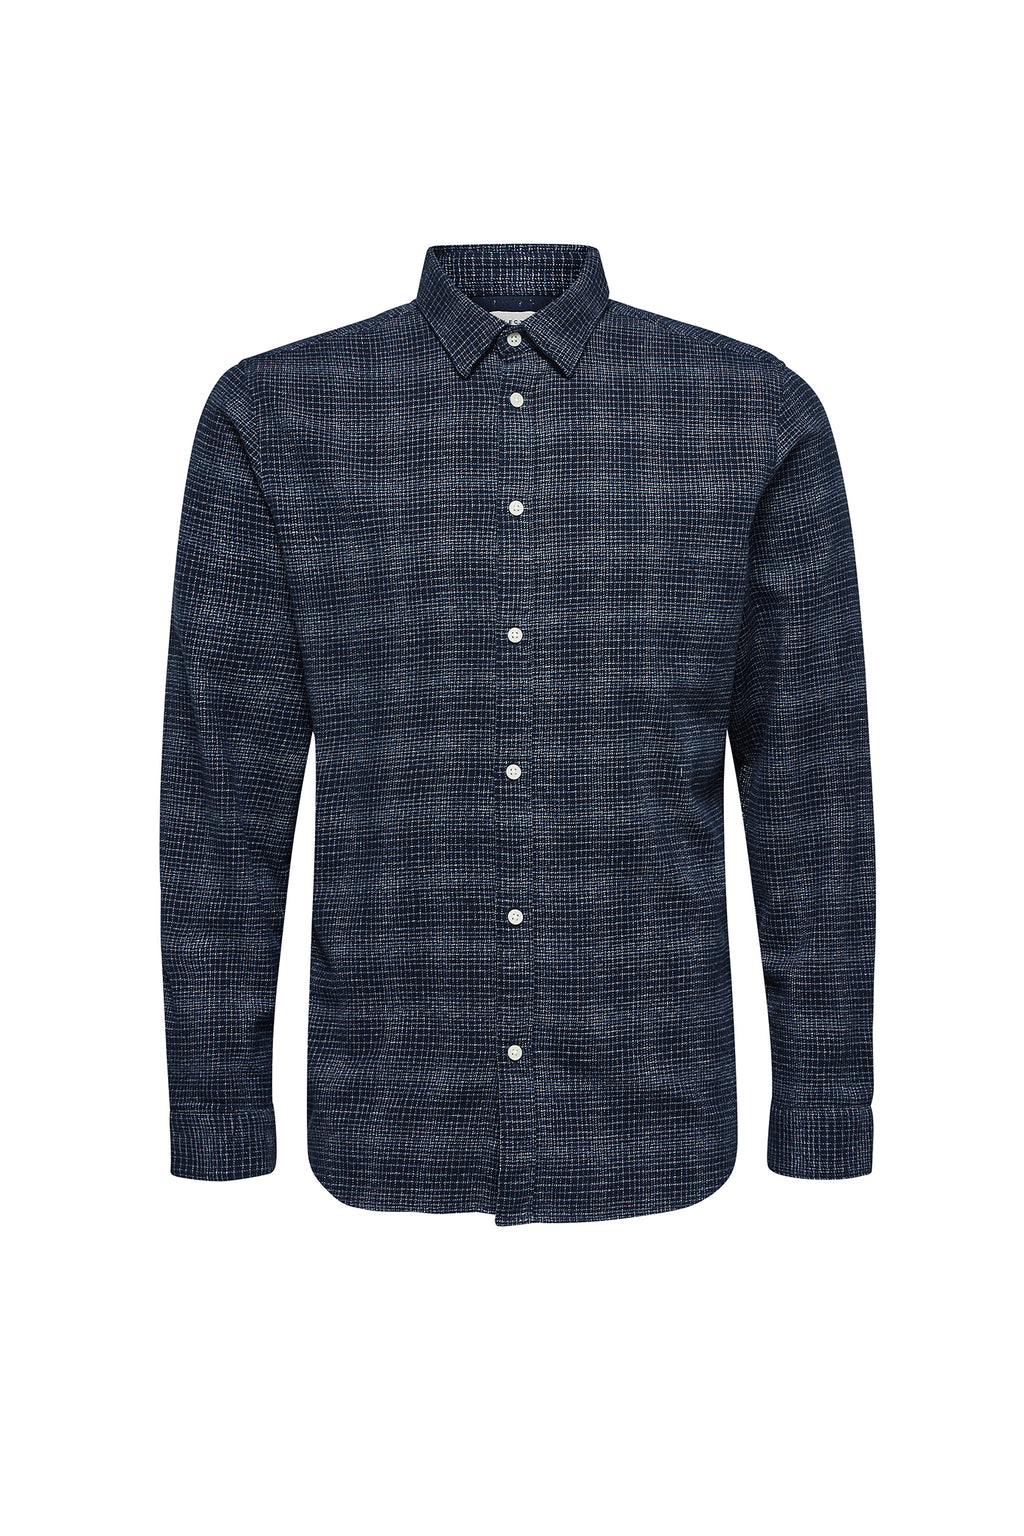 Andrew-Camp Shirt - Dark Blue White - Audace Copenhagen